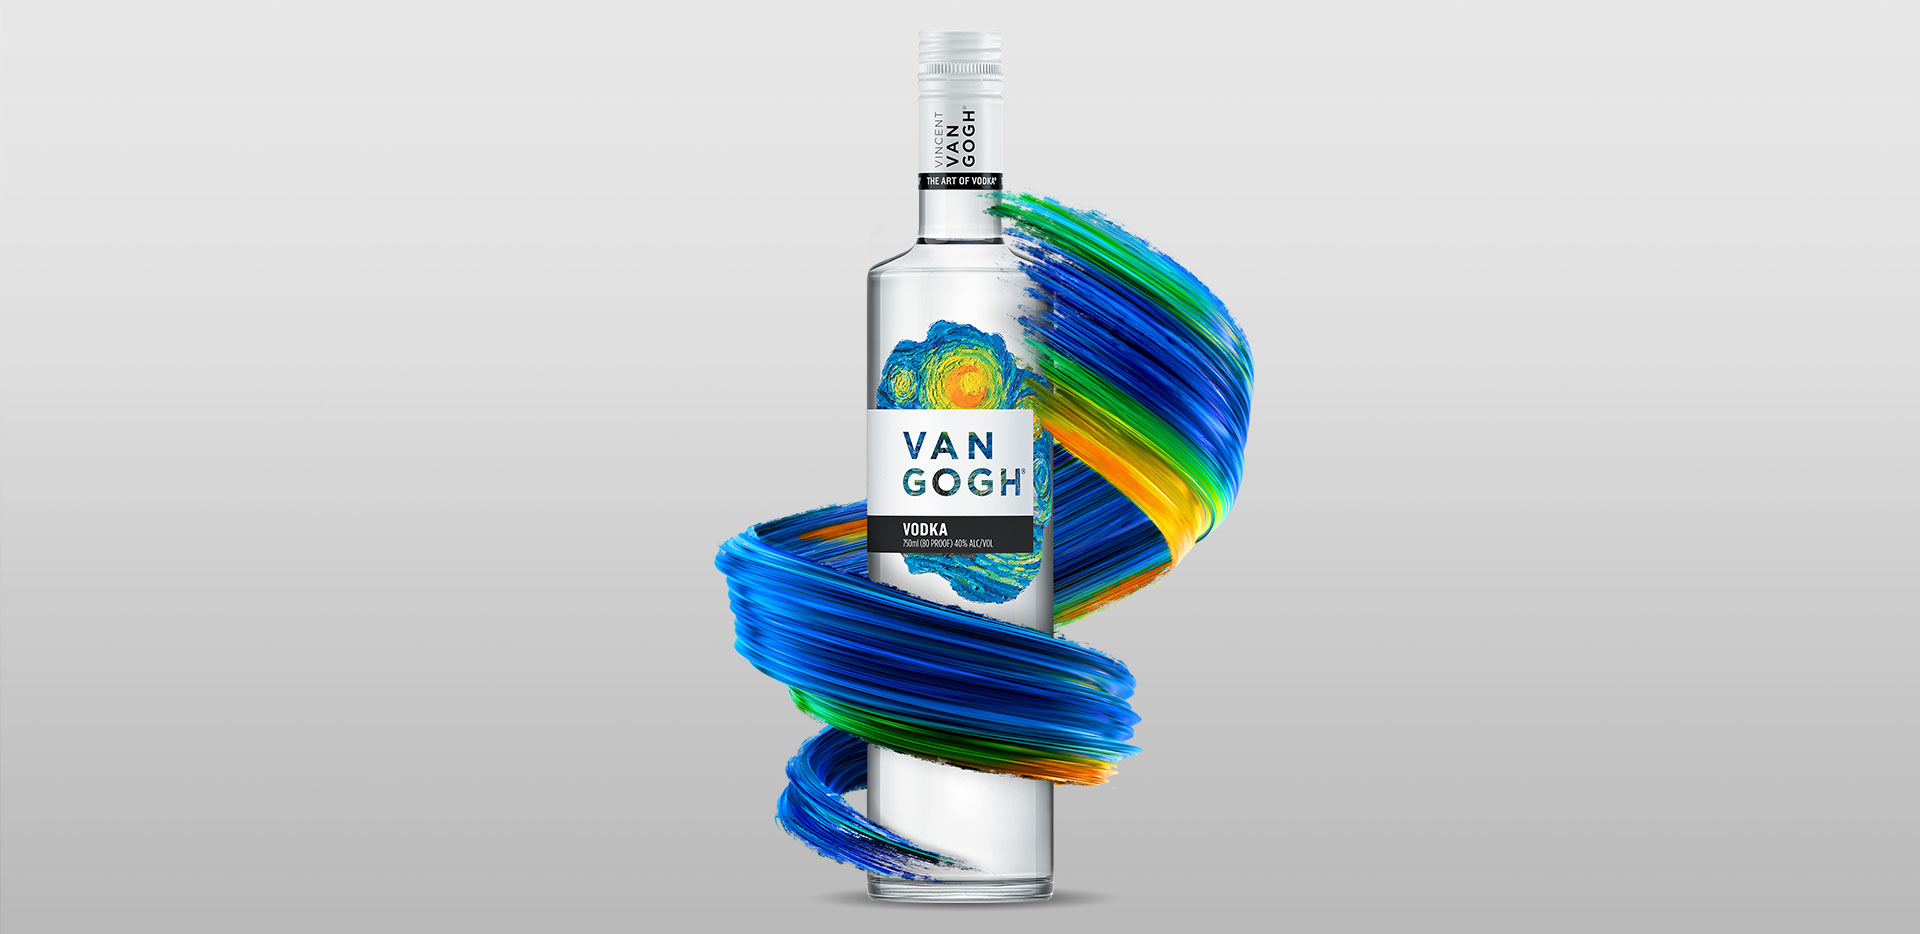 Van Gogh Vodka - with swirl graphic